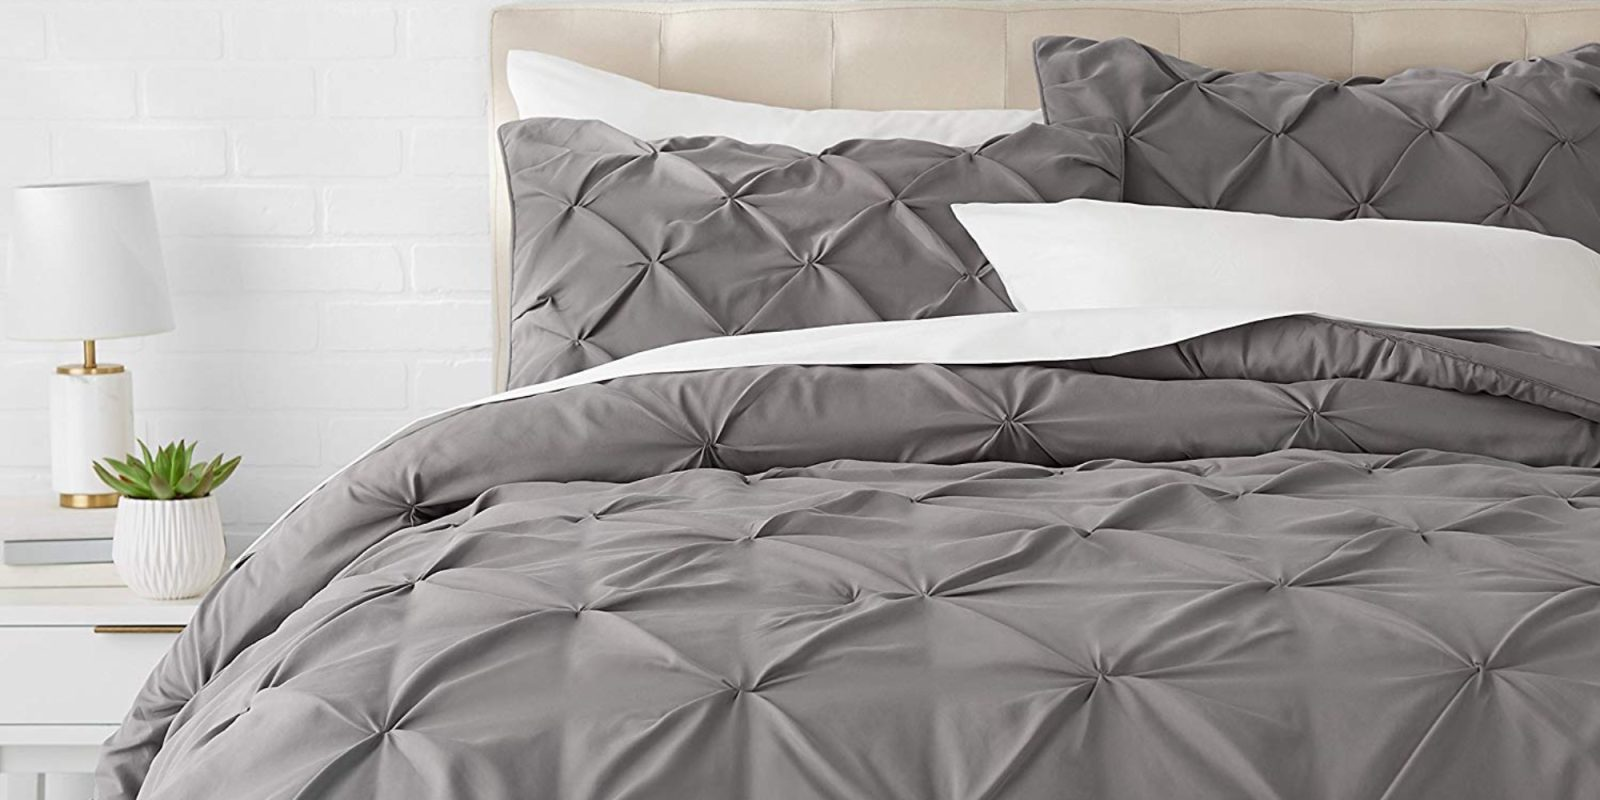 Need a new comforter? Amazon has you covered with 25% off styles from $29